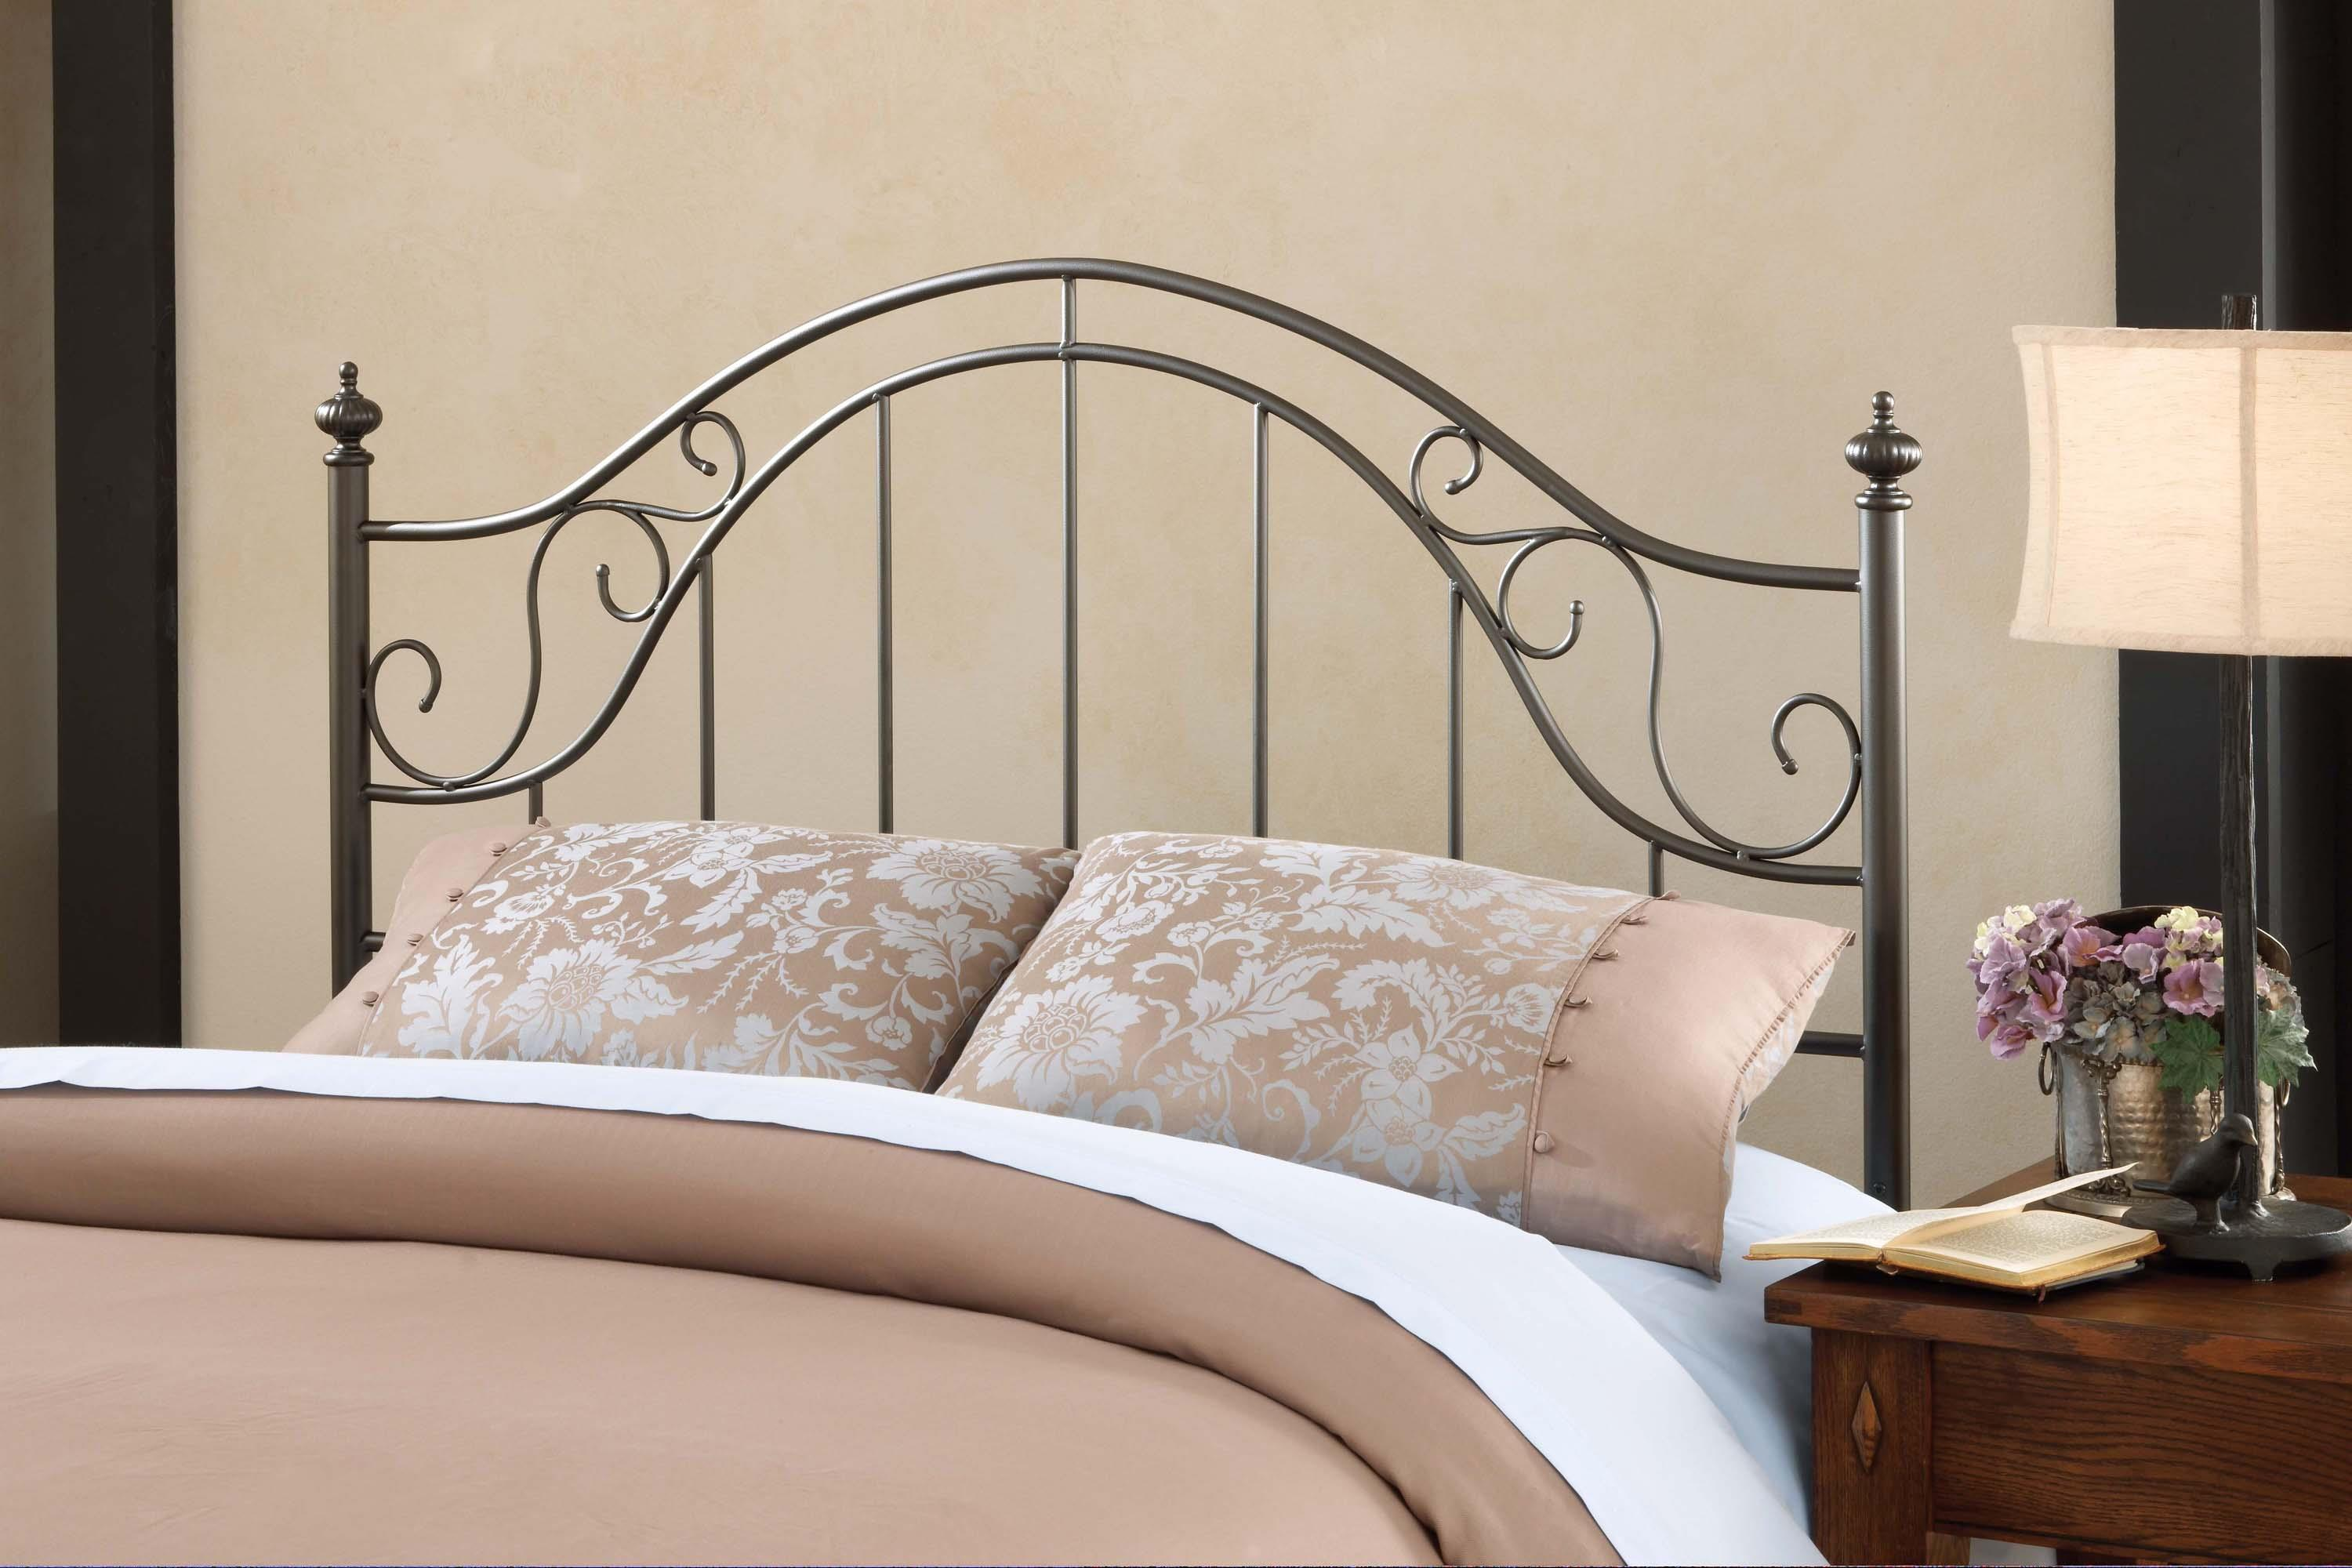 Hillsdale Clayton Headboard - Full/Queen - w/Rails - Item Number: 1681HFQR